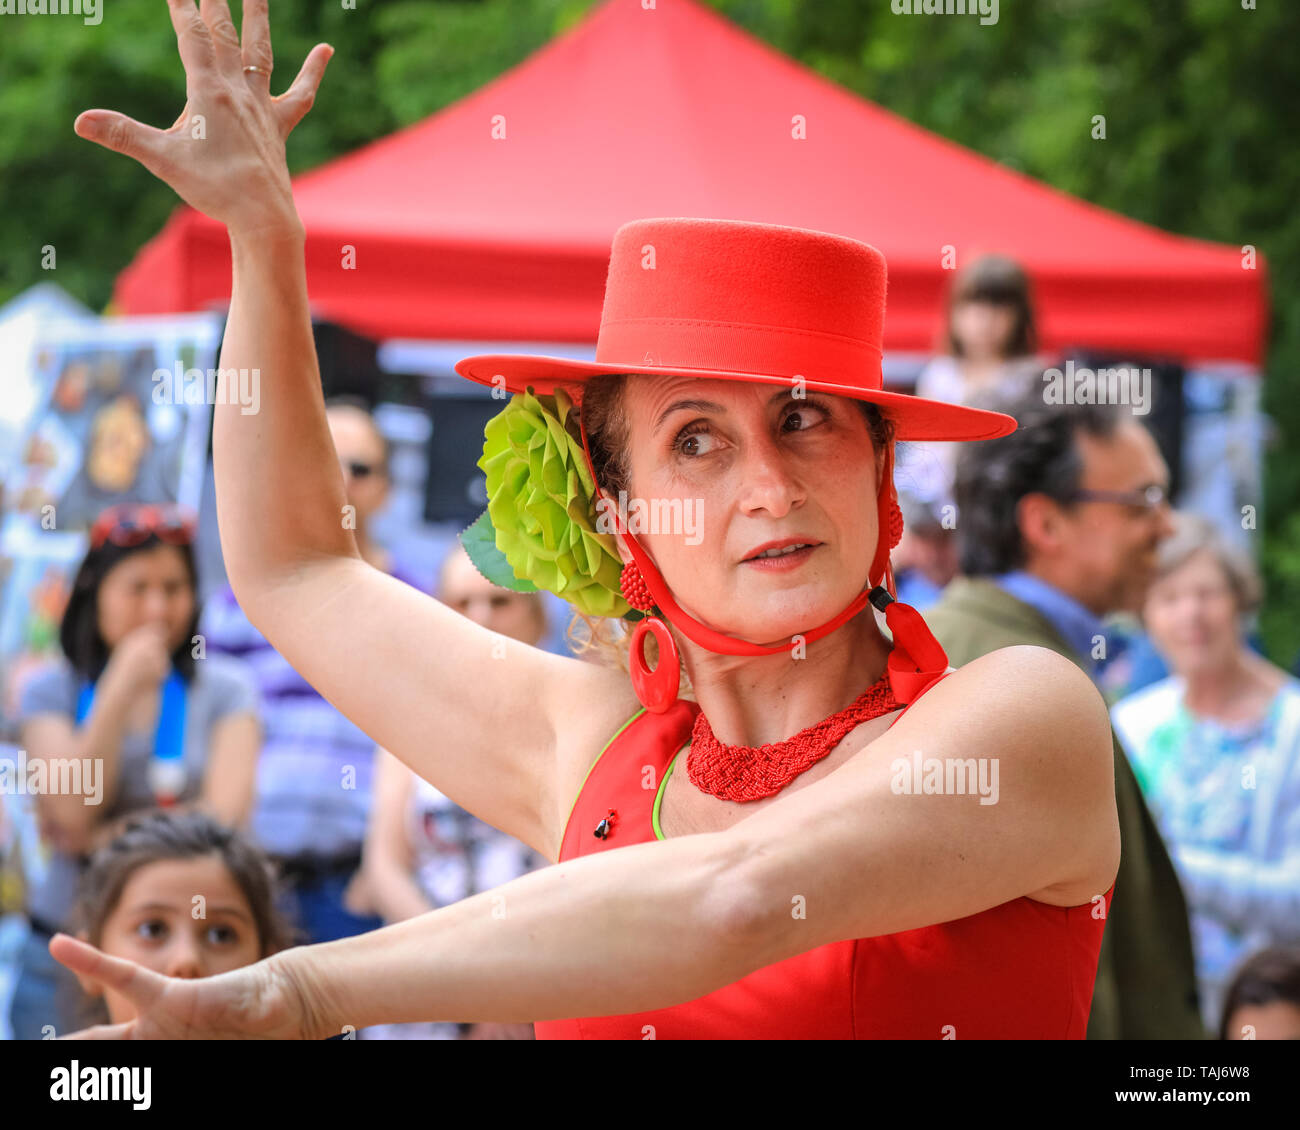 South Bank, London, UK - 25th May 2019. Spectators and dance enthusiasts meet with dancers from the Illusion Flamenco School in London for some flamenco dancing. The Feria de Londres is a free festival on London's South Bank presenting Spanish culture, dance, music, wine and food from May 24-26. Credit: Imageplotter/Alamy Live News - Stock Image